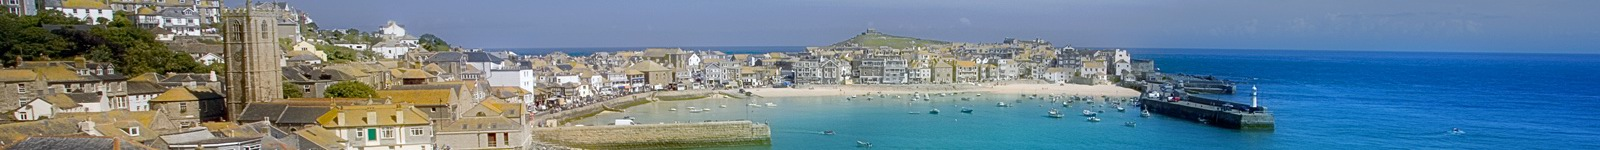 2008-06-23 GreatBritain StIves 01 Cropped.jpg